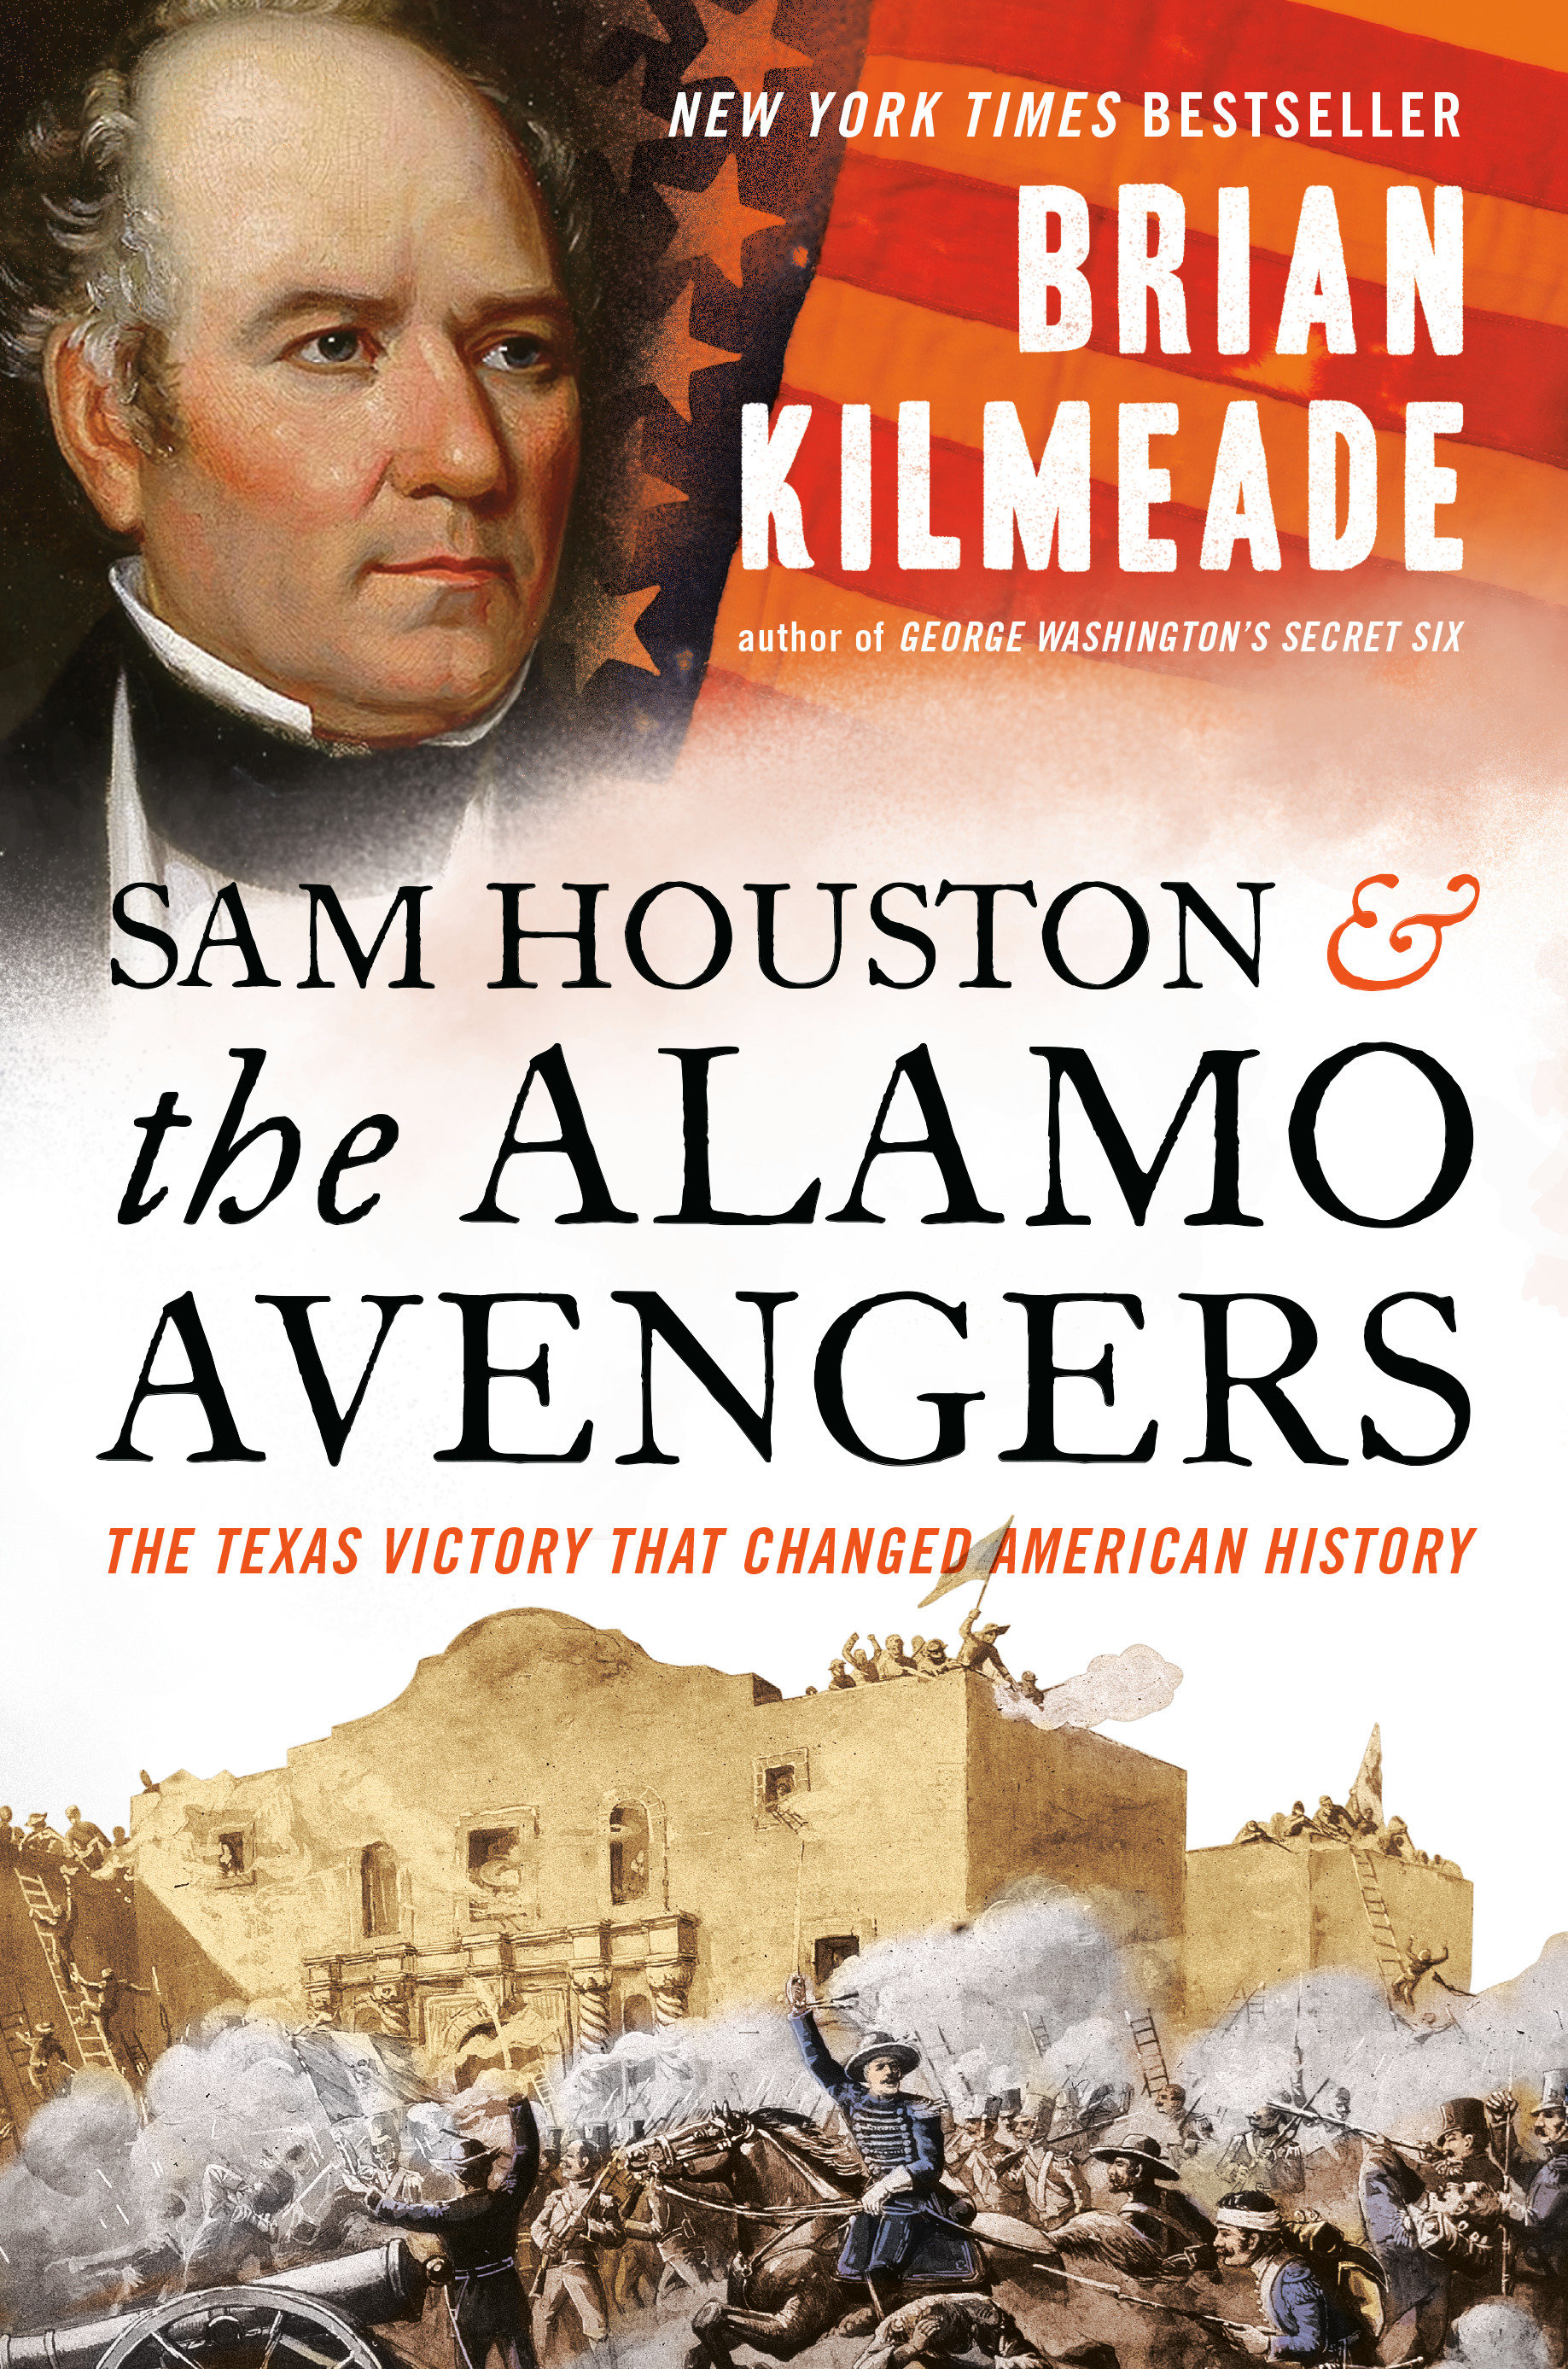 Sam Houston and the Alamo Avengers : The Texas Victory That Changed American History